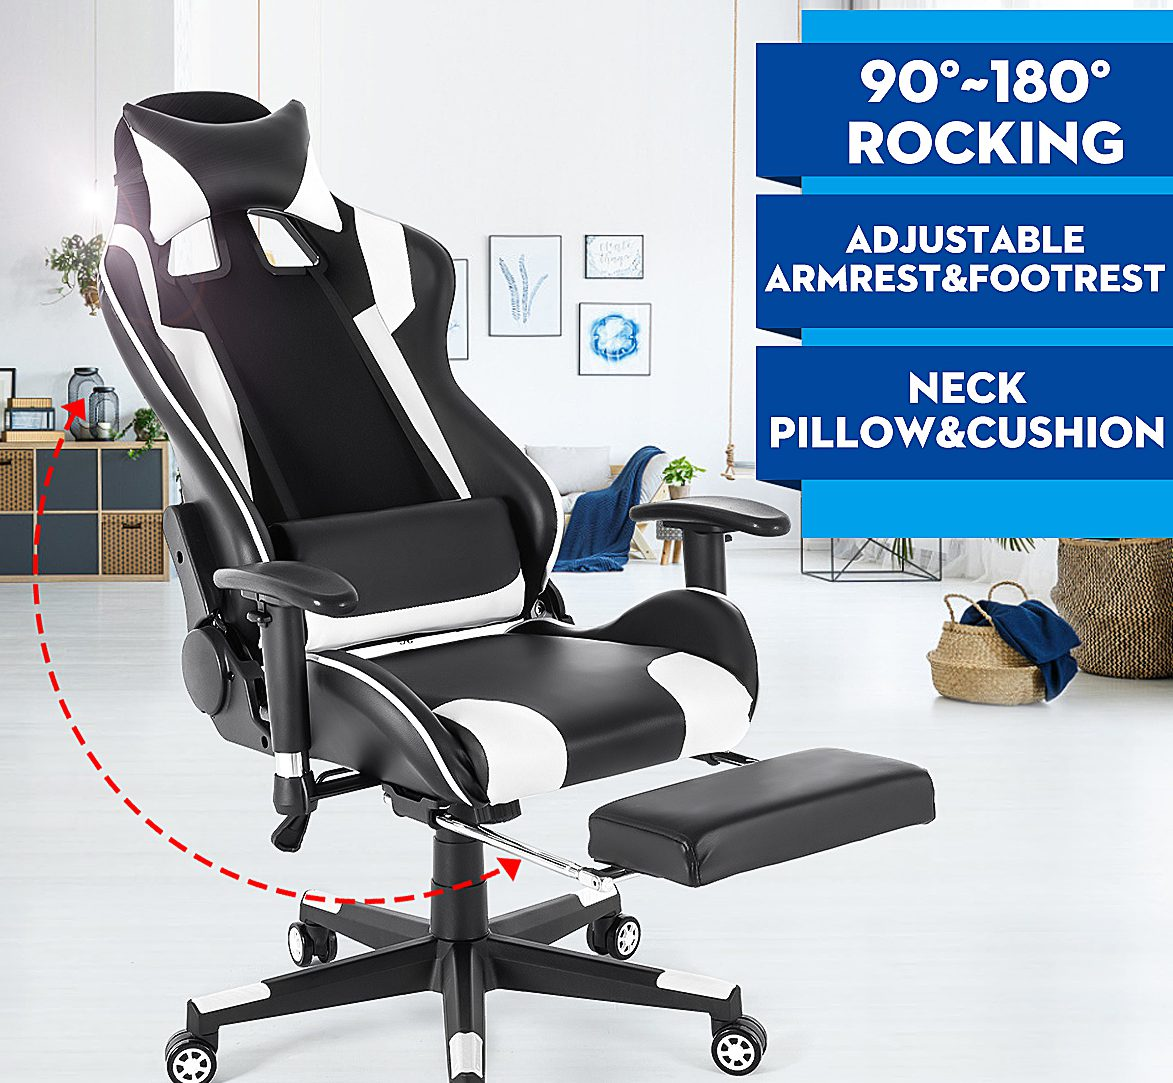 Adjustable Headrest Backrest